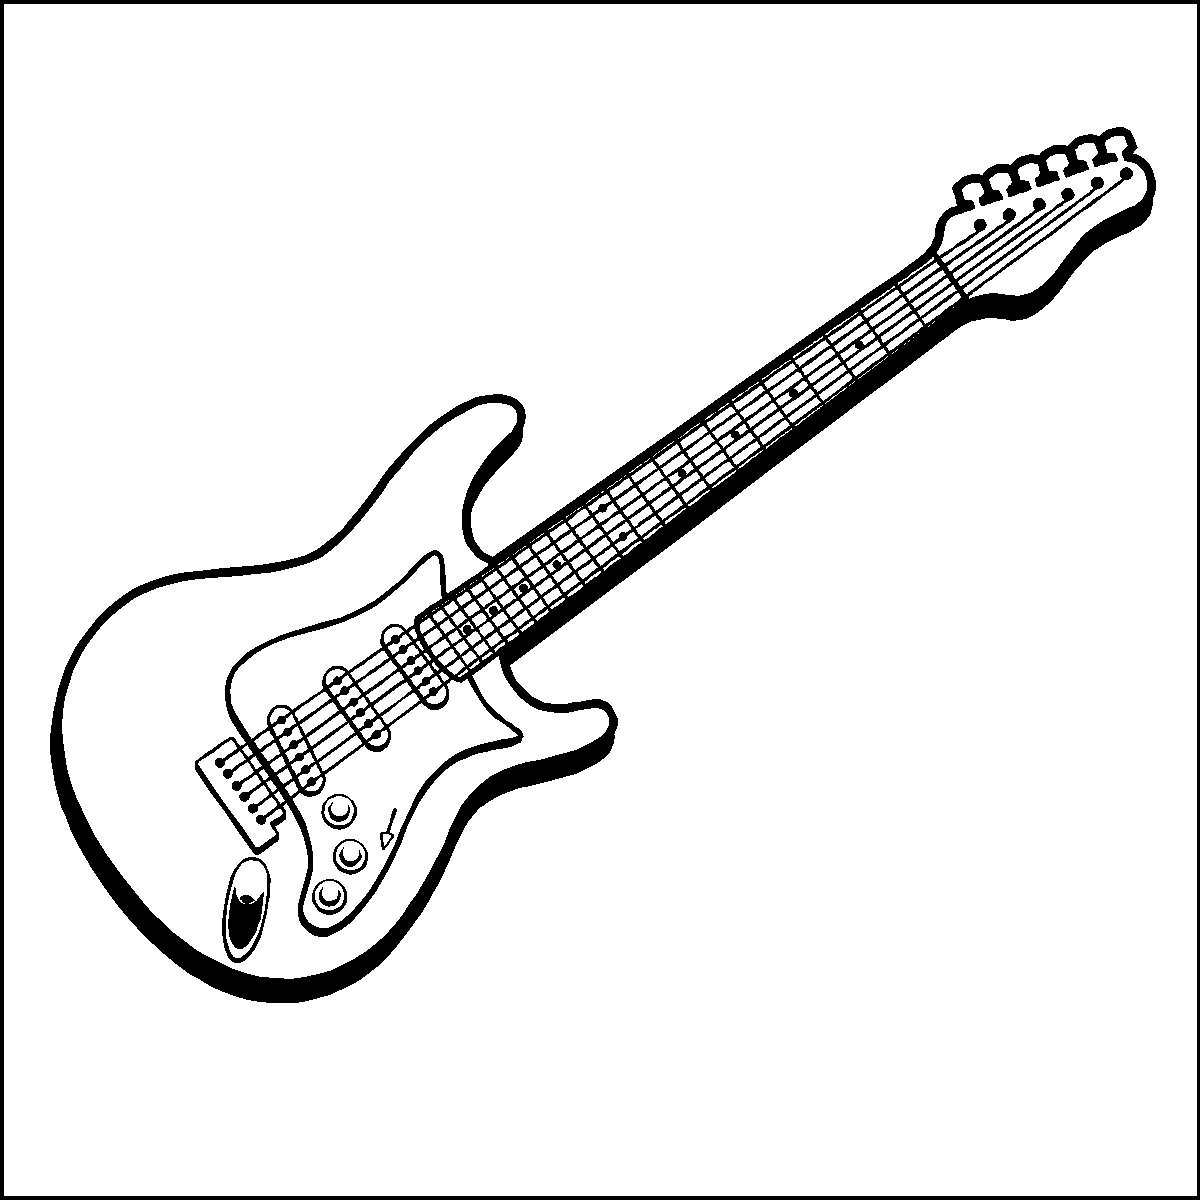 guitar coloring page - q=guitar outline